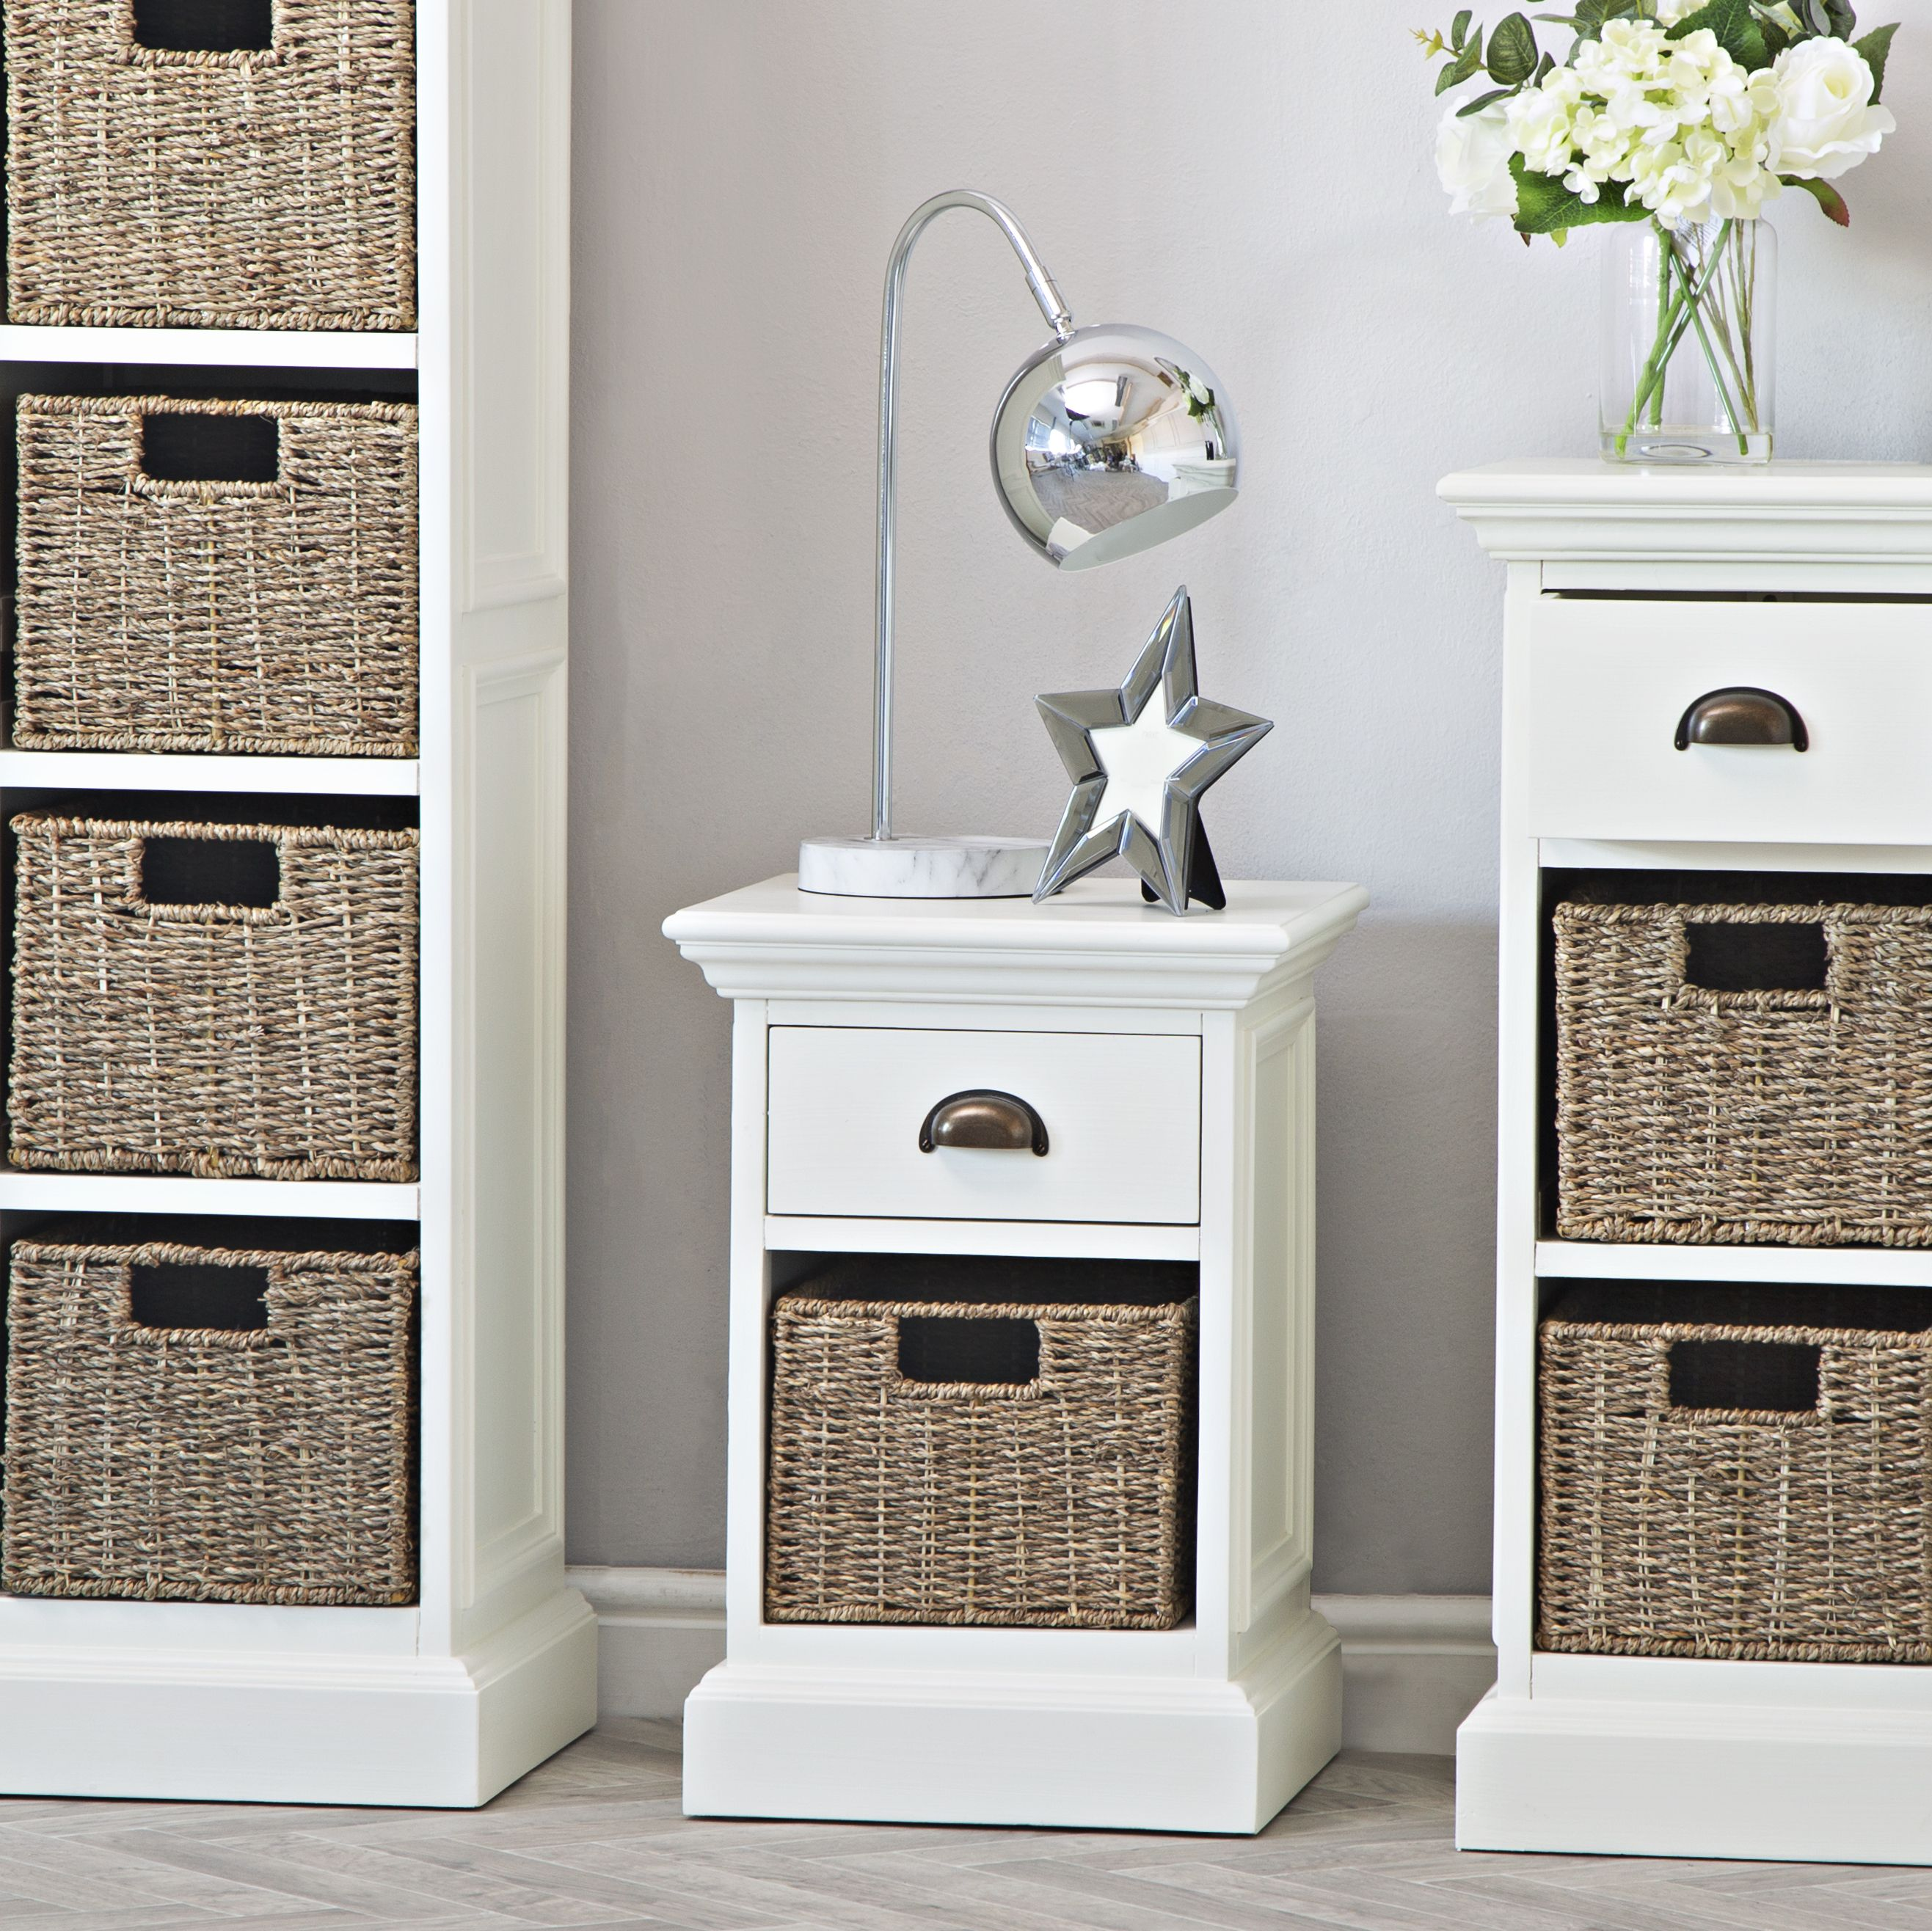 Monaco White Wicker 1 Drawer 1 Basket Unit White Wicker Wicker Decor